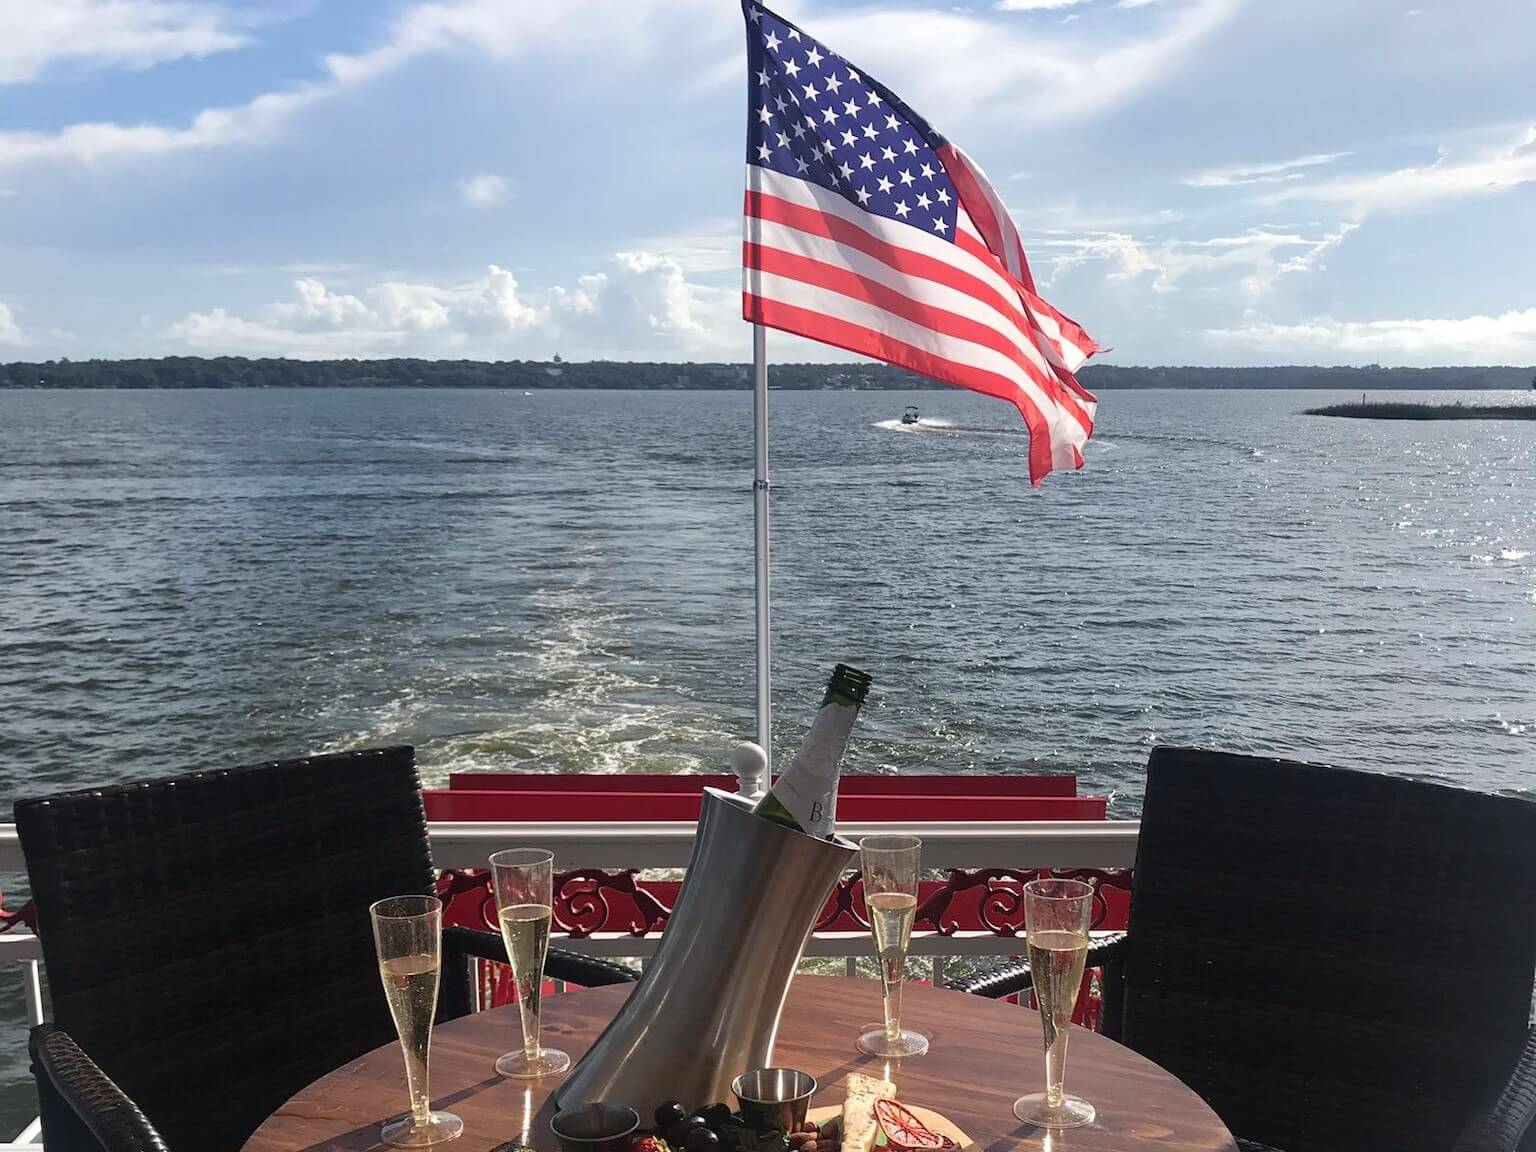 Photo of a table set with 4 glasses of champagne on the upper deck of the Dora Queen paddlewheel boat in the back of the boat. The American flag is seen flying on the boat.